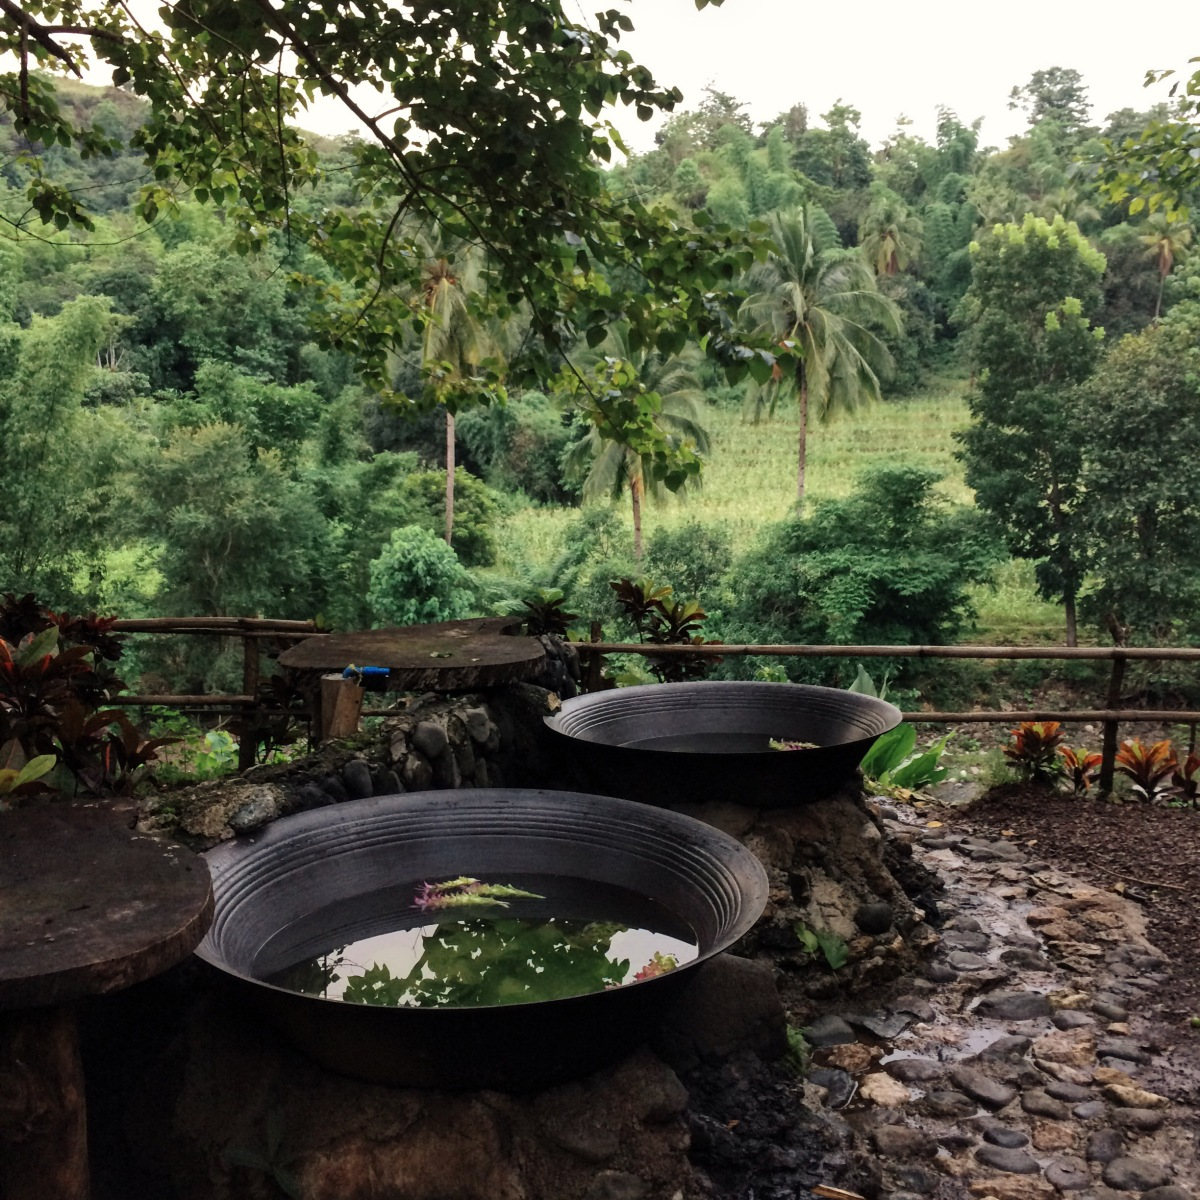 Kawa Hot Bath Of Tibiao Antique: Hot Tub by the River